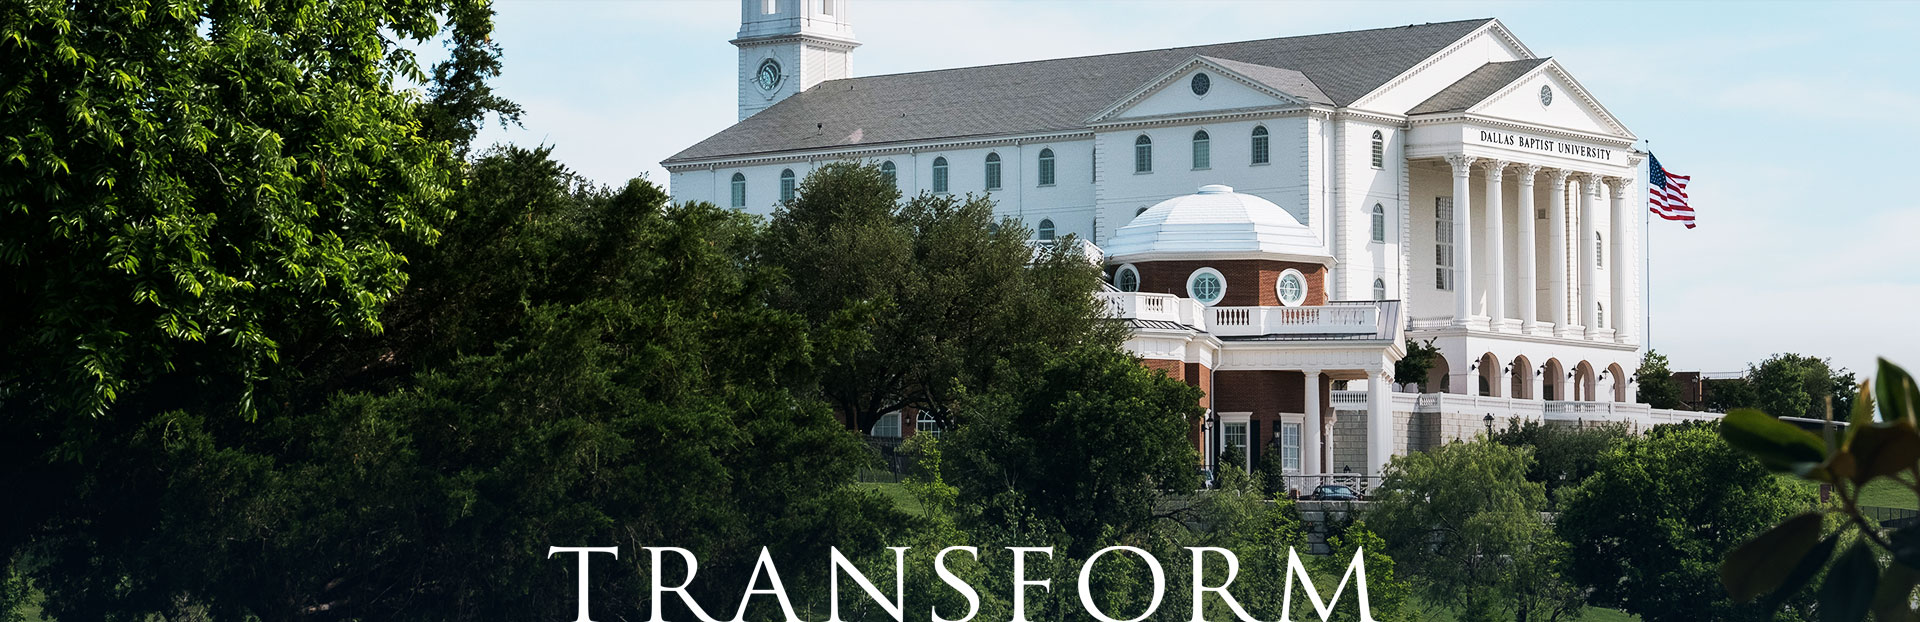 About DBU's Transform Campaign Banner